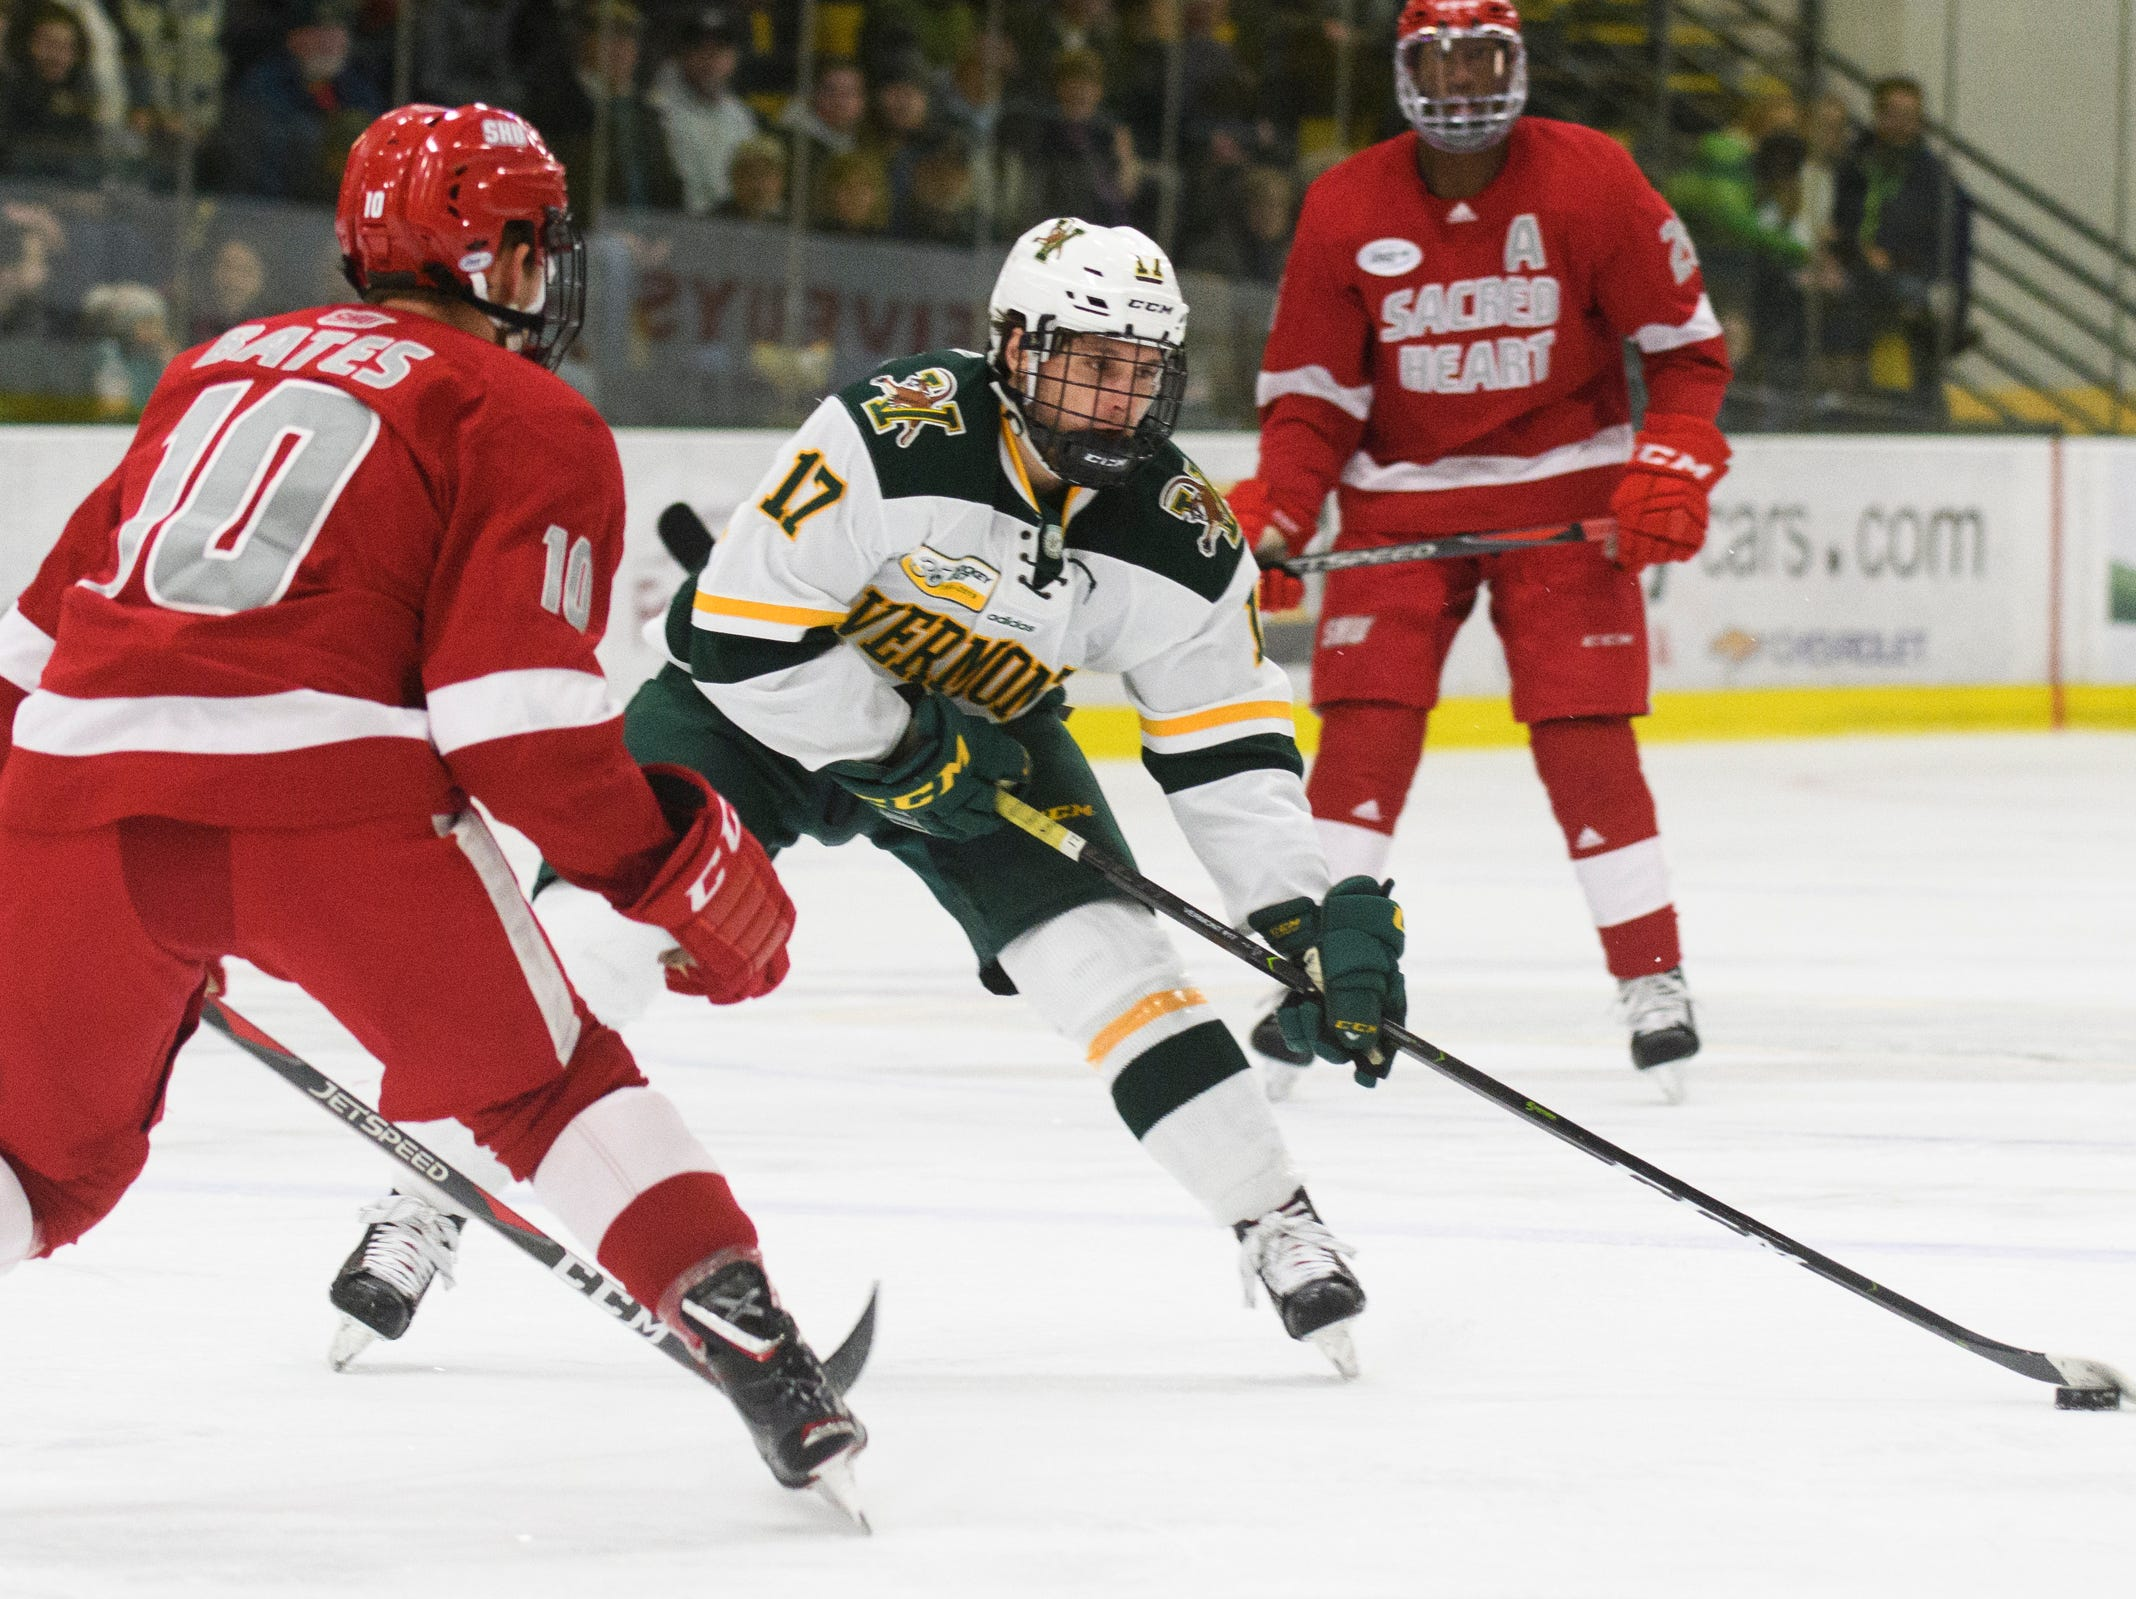 Vermont forward Craig Puffer (17) looks to shoot the puck during the men's hockey game between the Sacred Heart Pioneers and the Vermont Catamounts at Gutterson Field House on Friday night January 4, 2019 in Burlington.